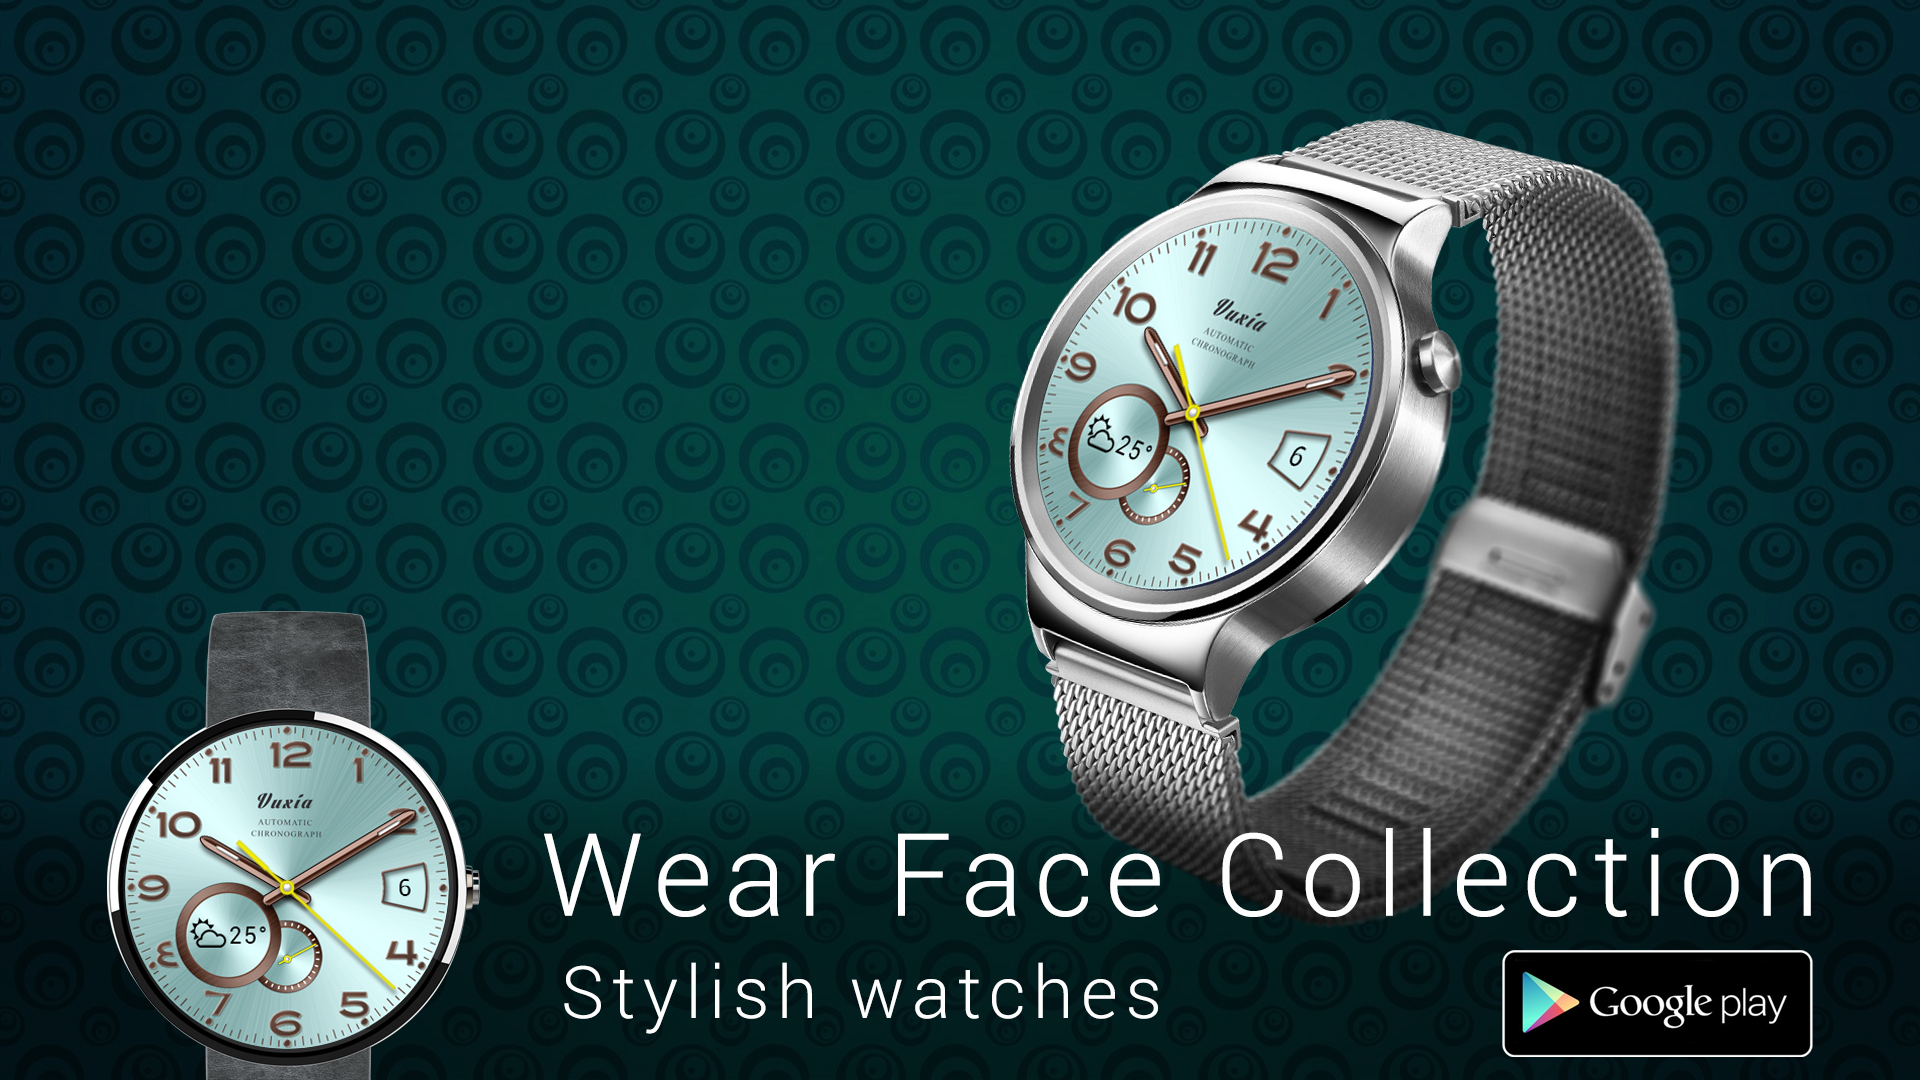 Wear face collection - Phone